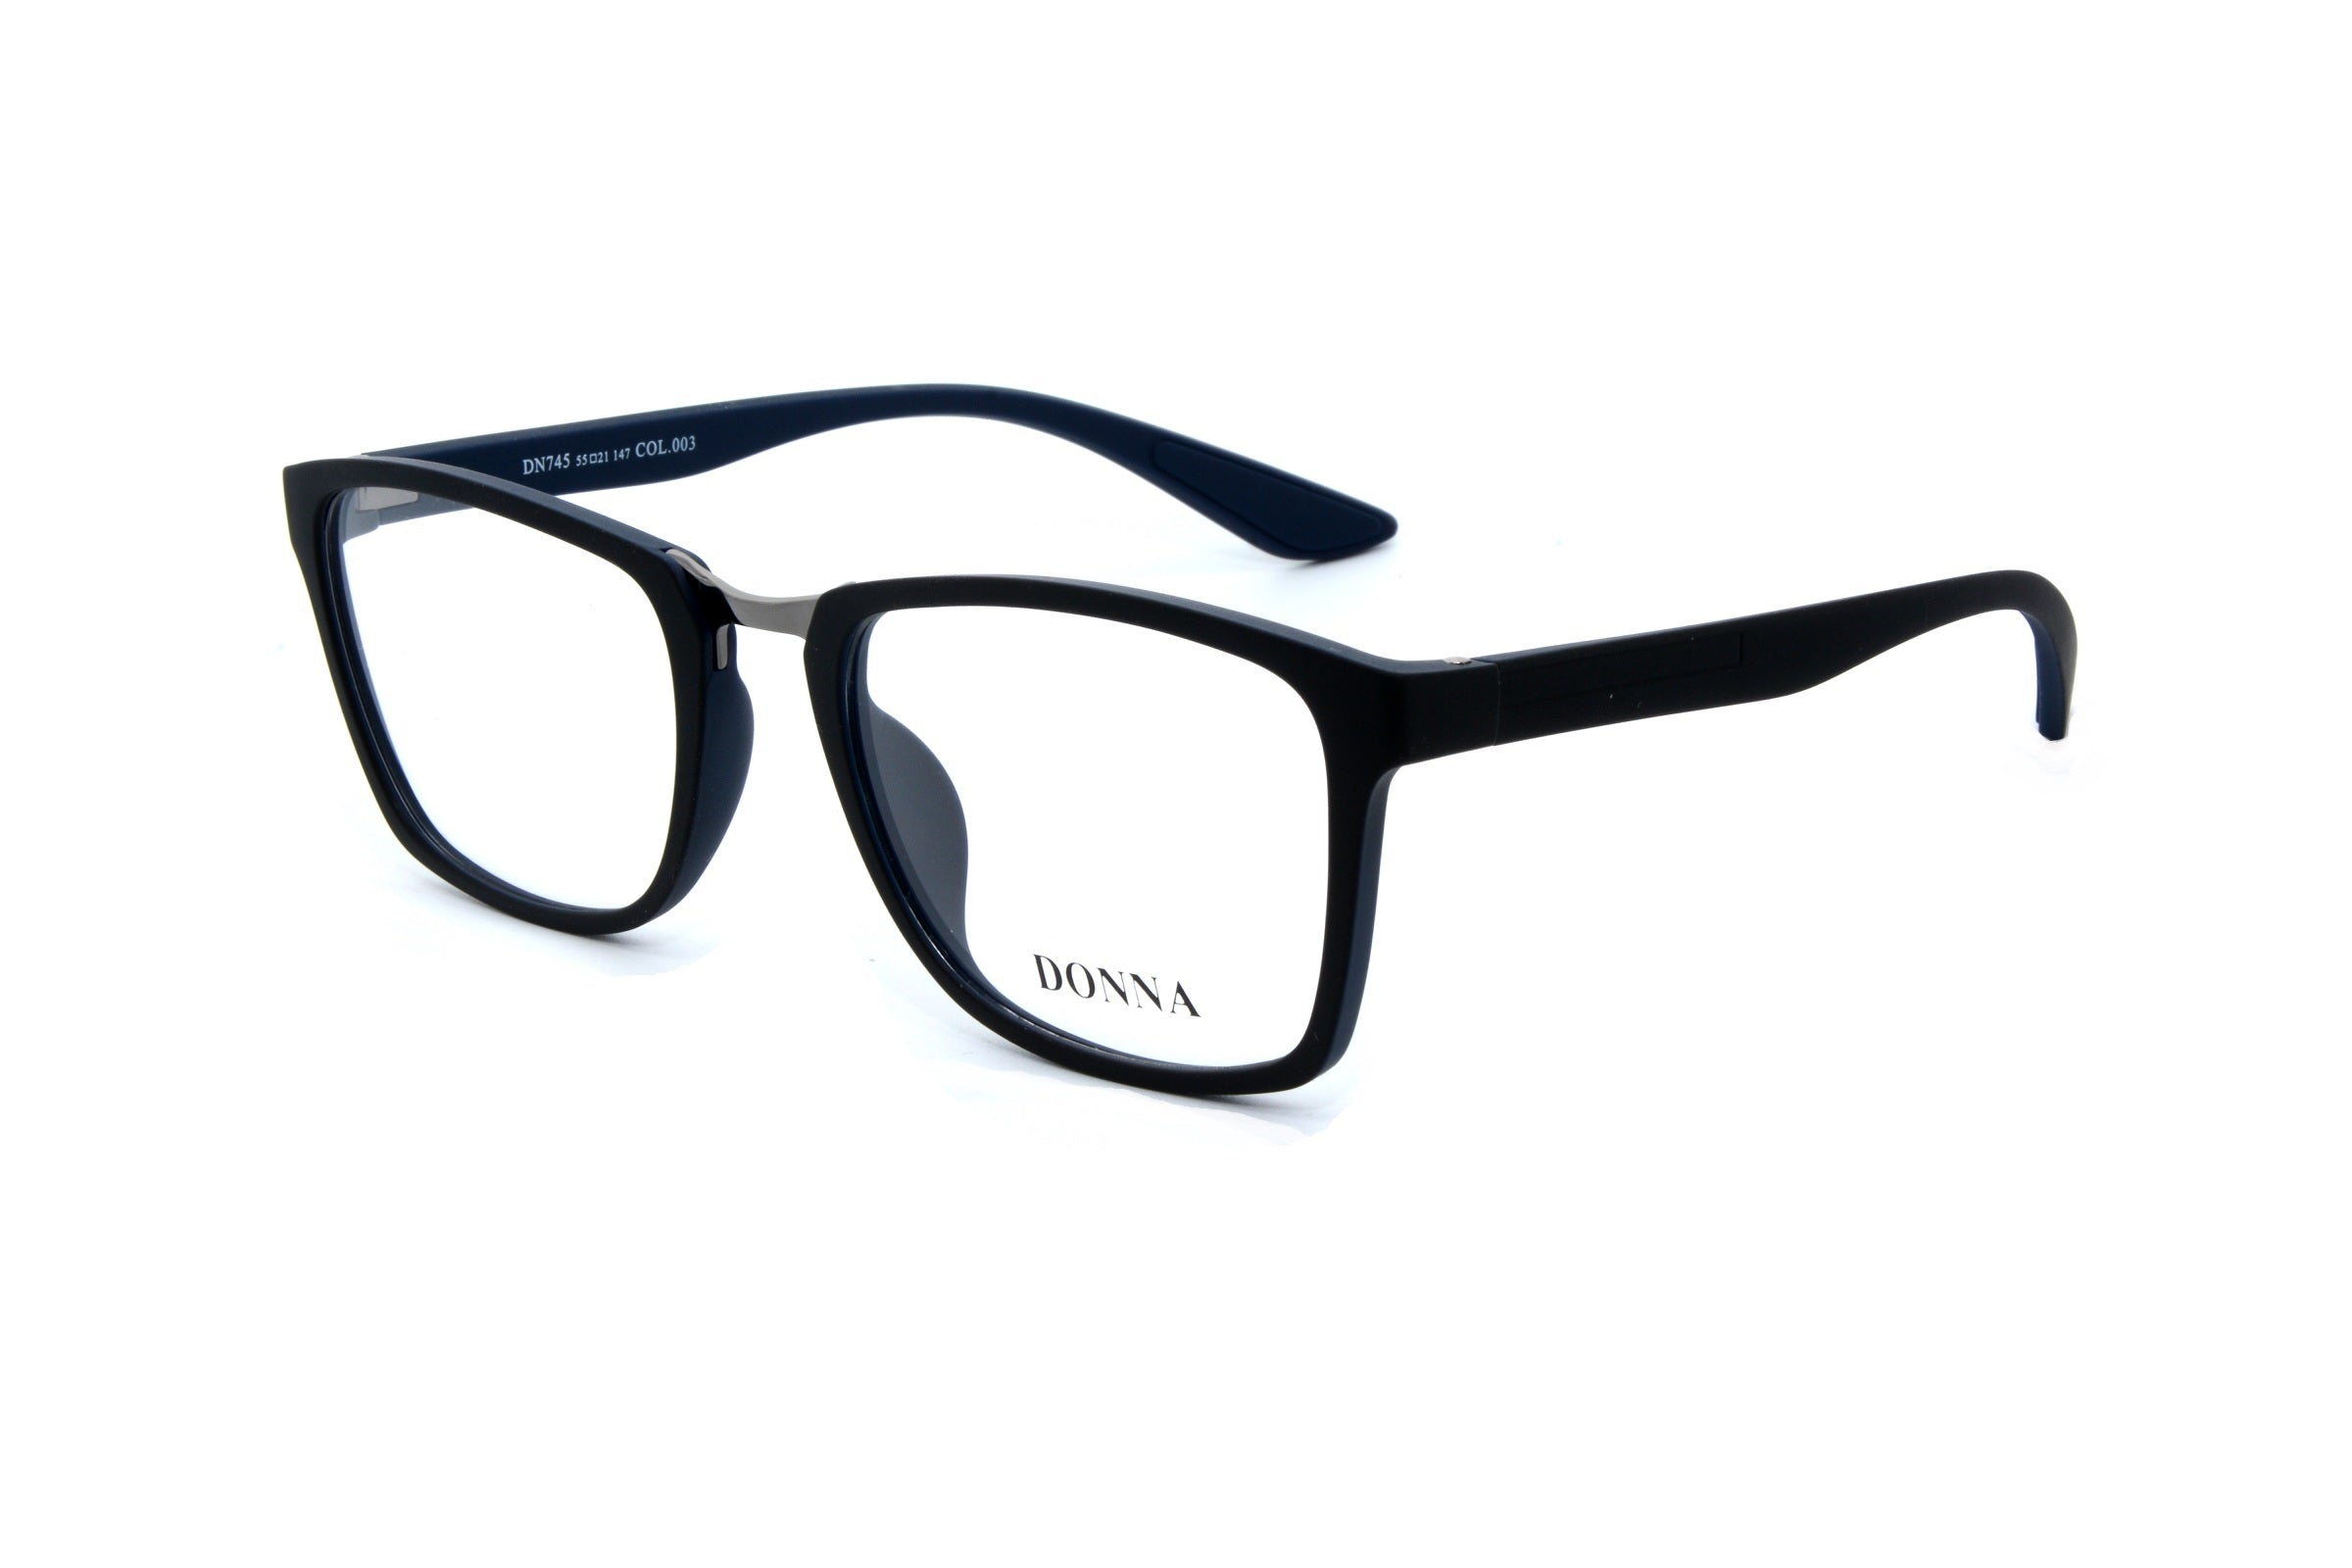 Donna eyewear 745, C003 - Optics Trading